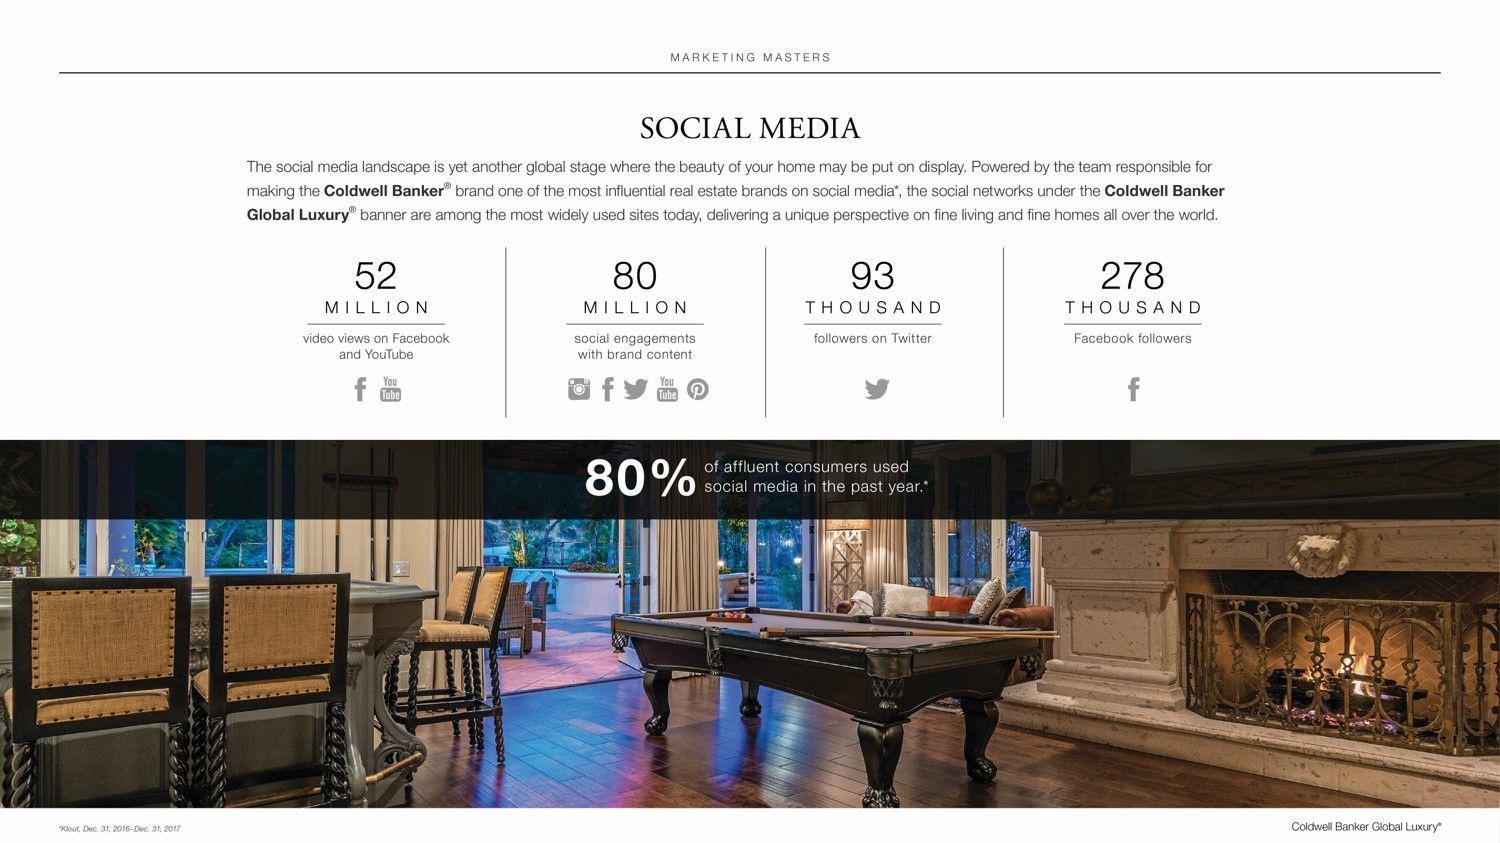 coldwell-banker-global-luxury-social-media